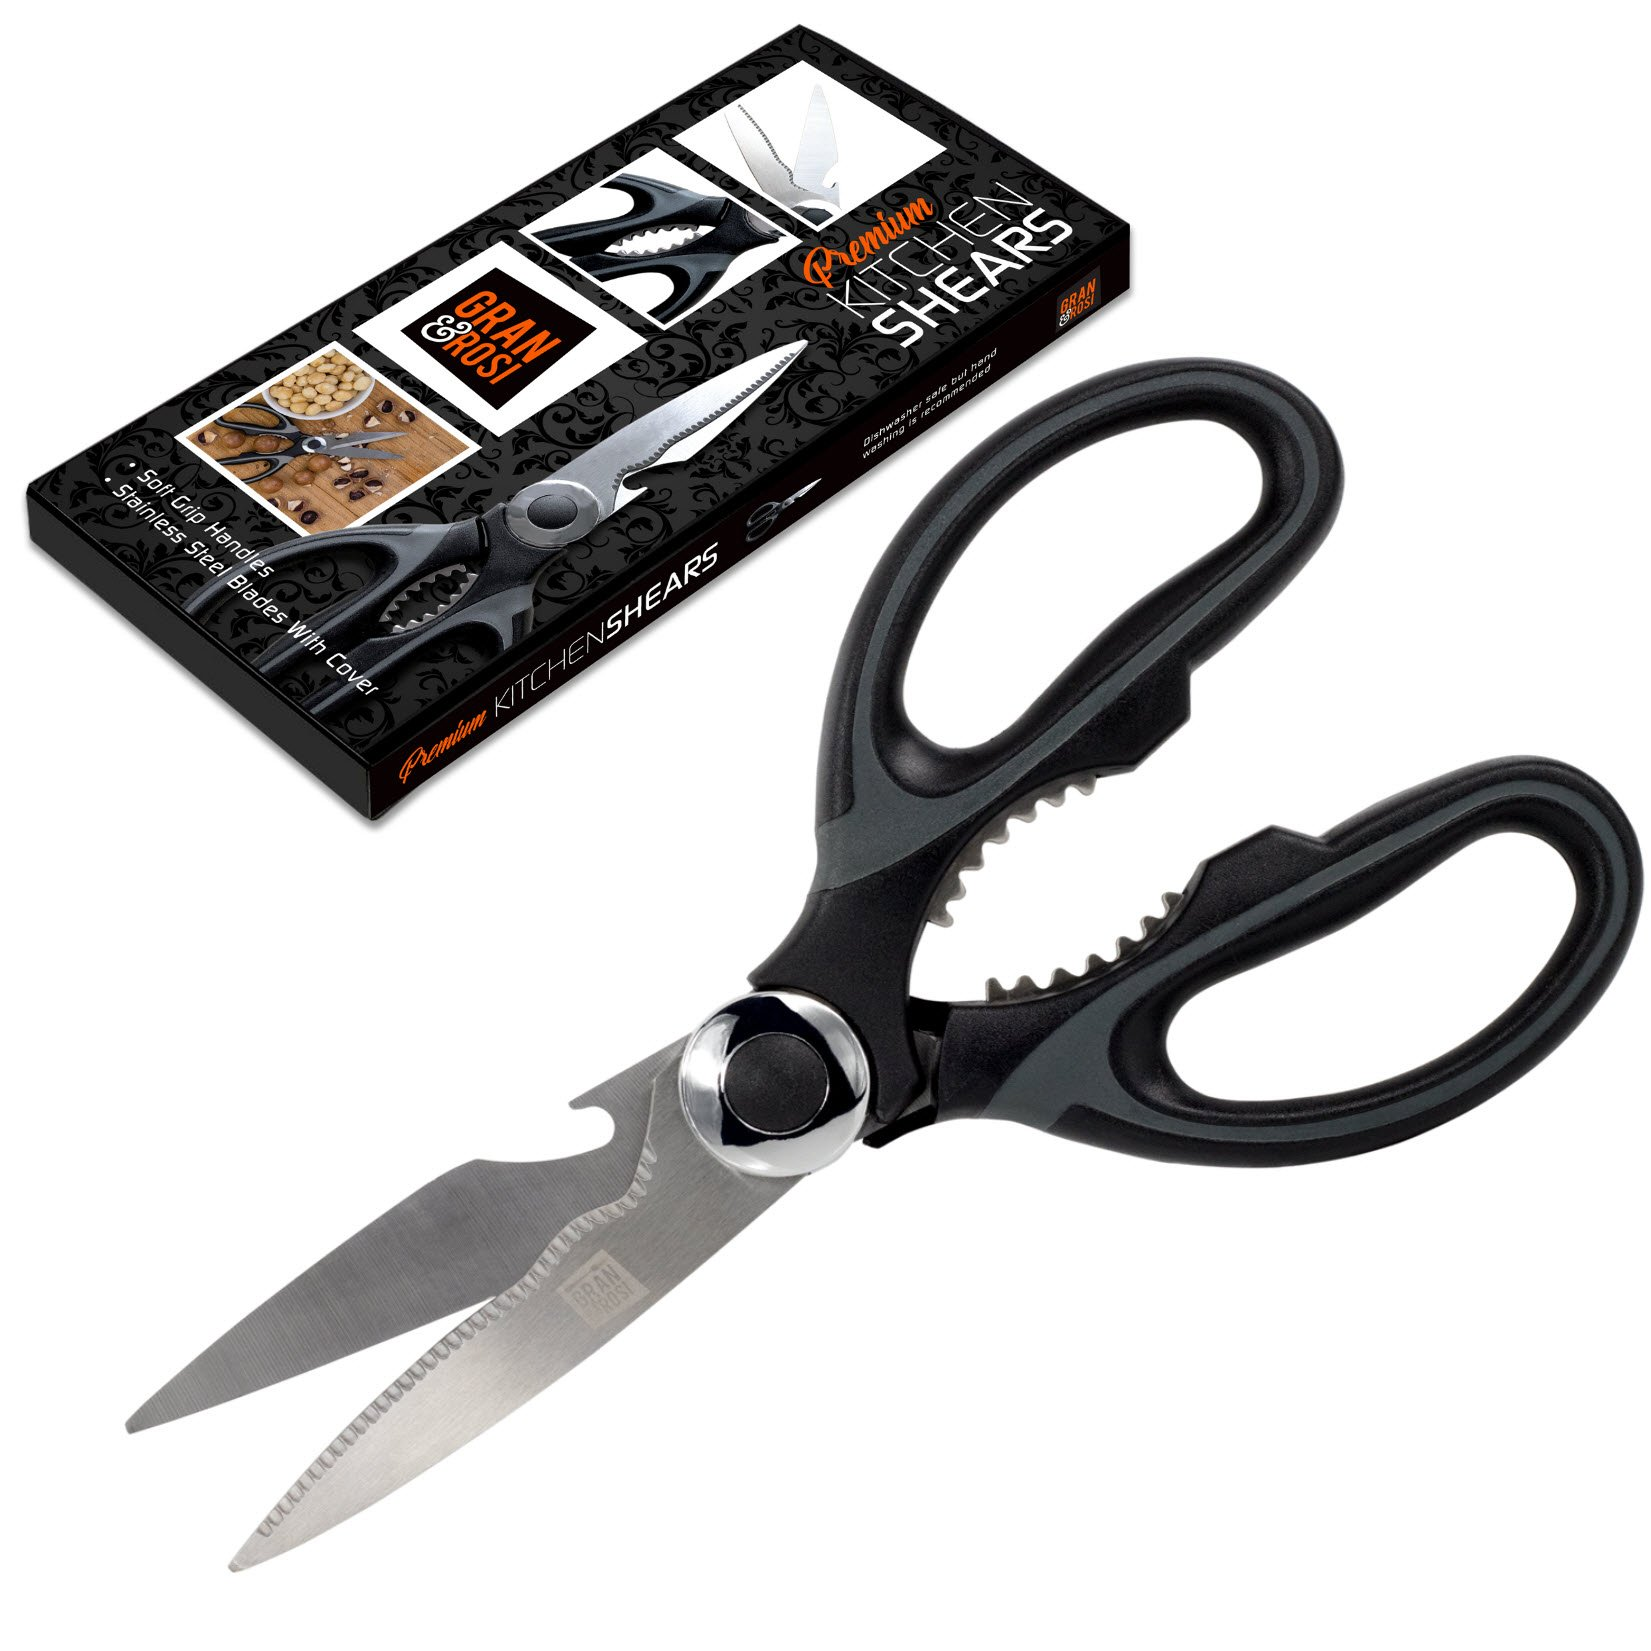 GranRosi Chef Quality Kitchen Scissors - Heavy Duty Stainless Steel Kitchen Shears - Extremely Sharp, Perfect For Cutting Your Chicken, Fish, Poultry And Vegetables